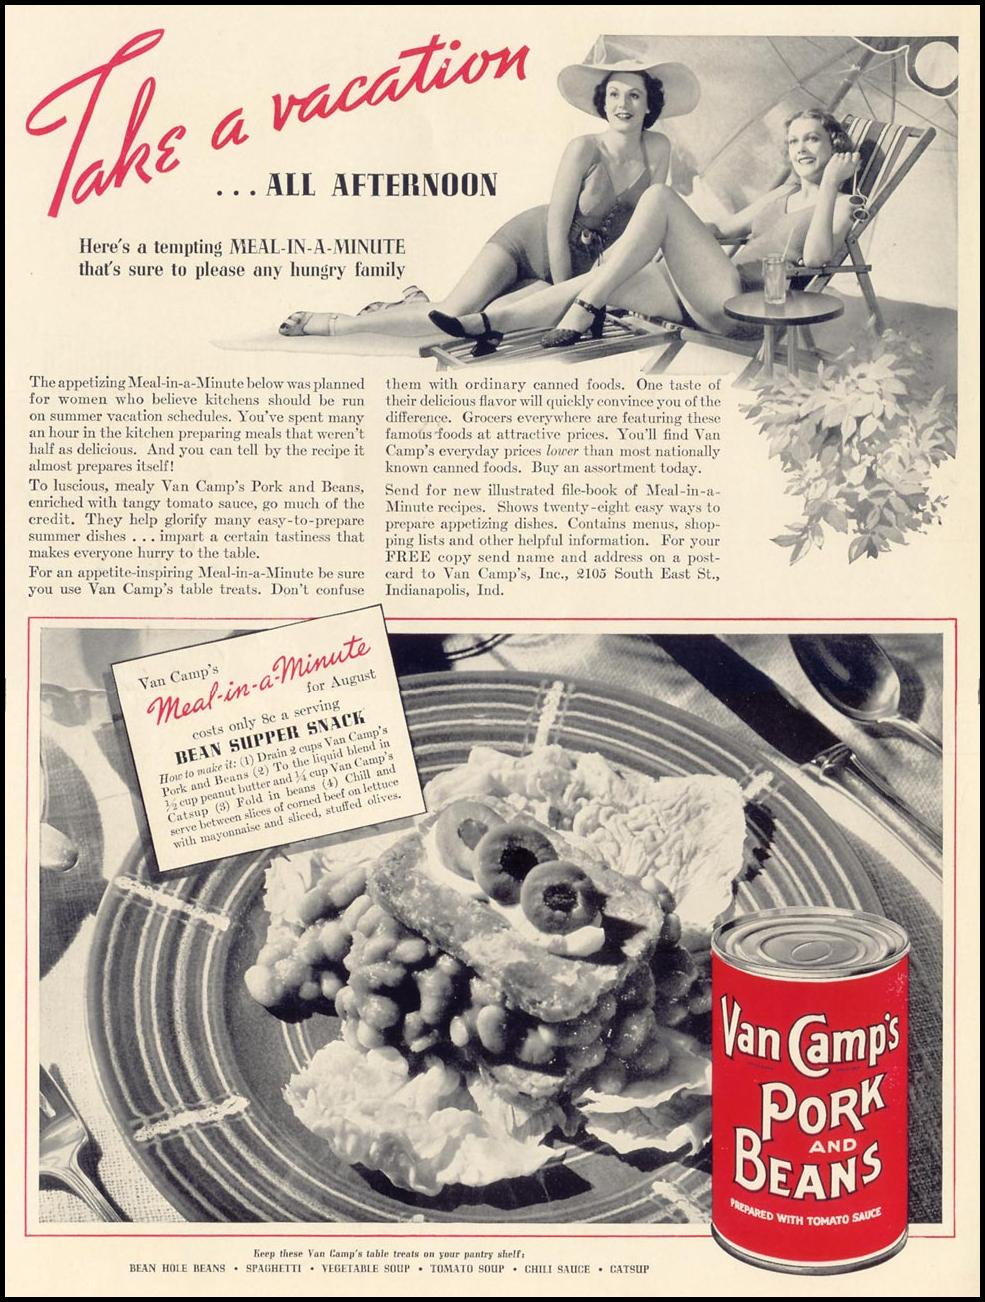 VAN CAMP'S PORK AND BEANS LIFE 07/26/1937 INSIDE FRONT